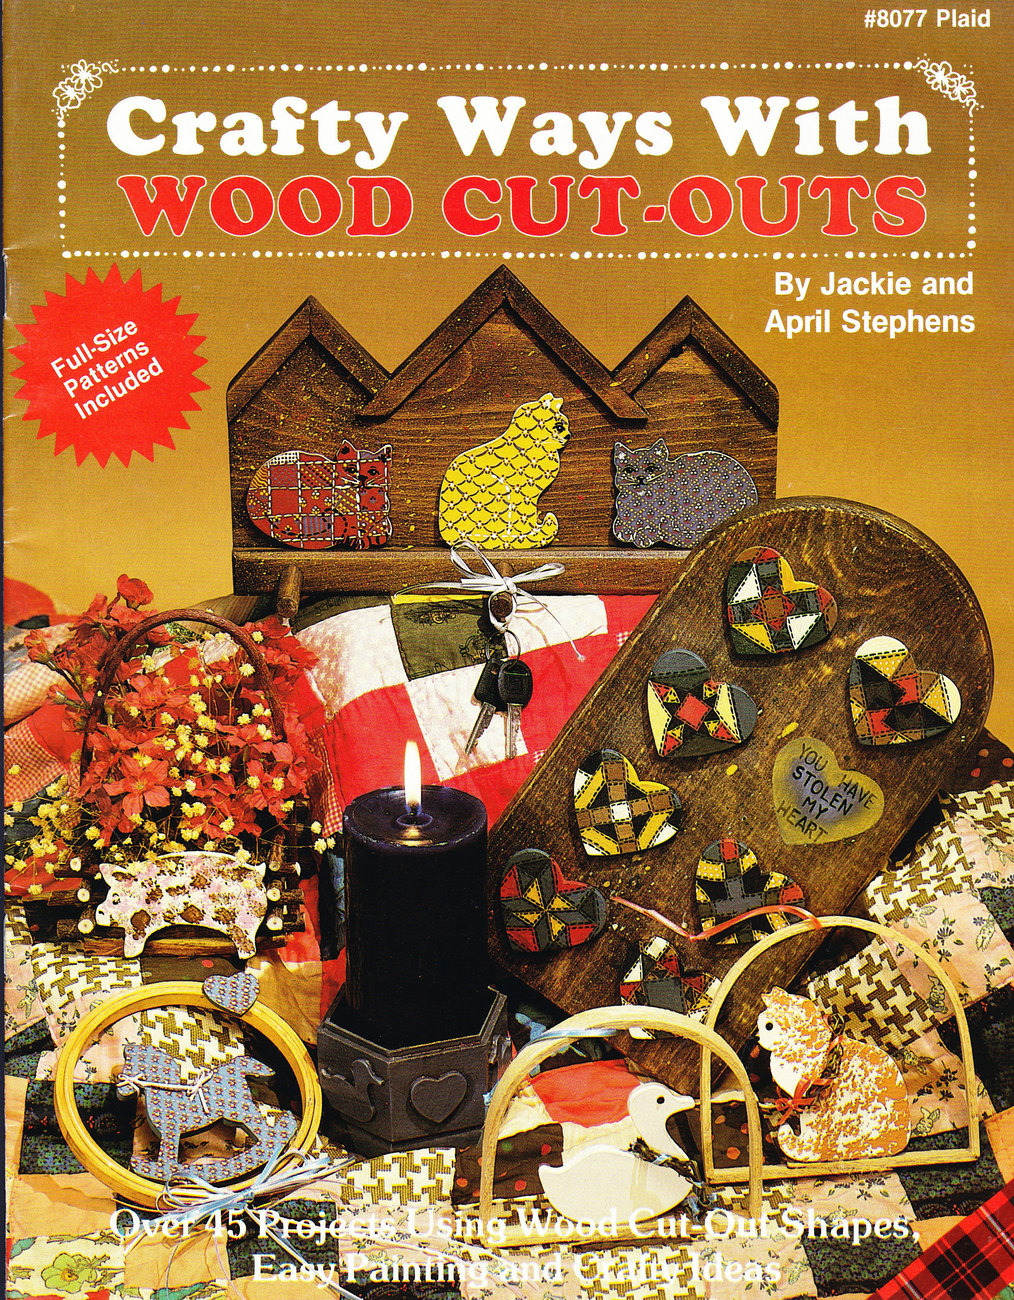 CRAFTY WAYS WITH WOOD CUT-OUTS PLAID #8077 FREE WITH QUALIFYING ORDER